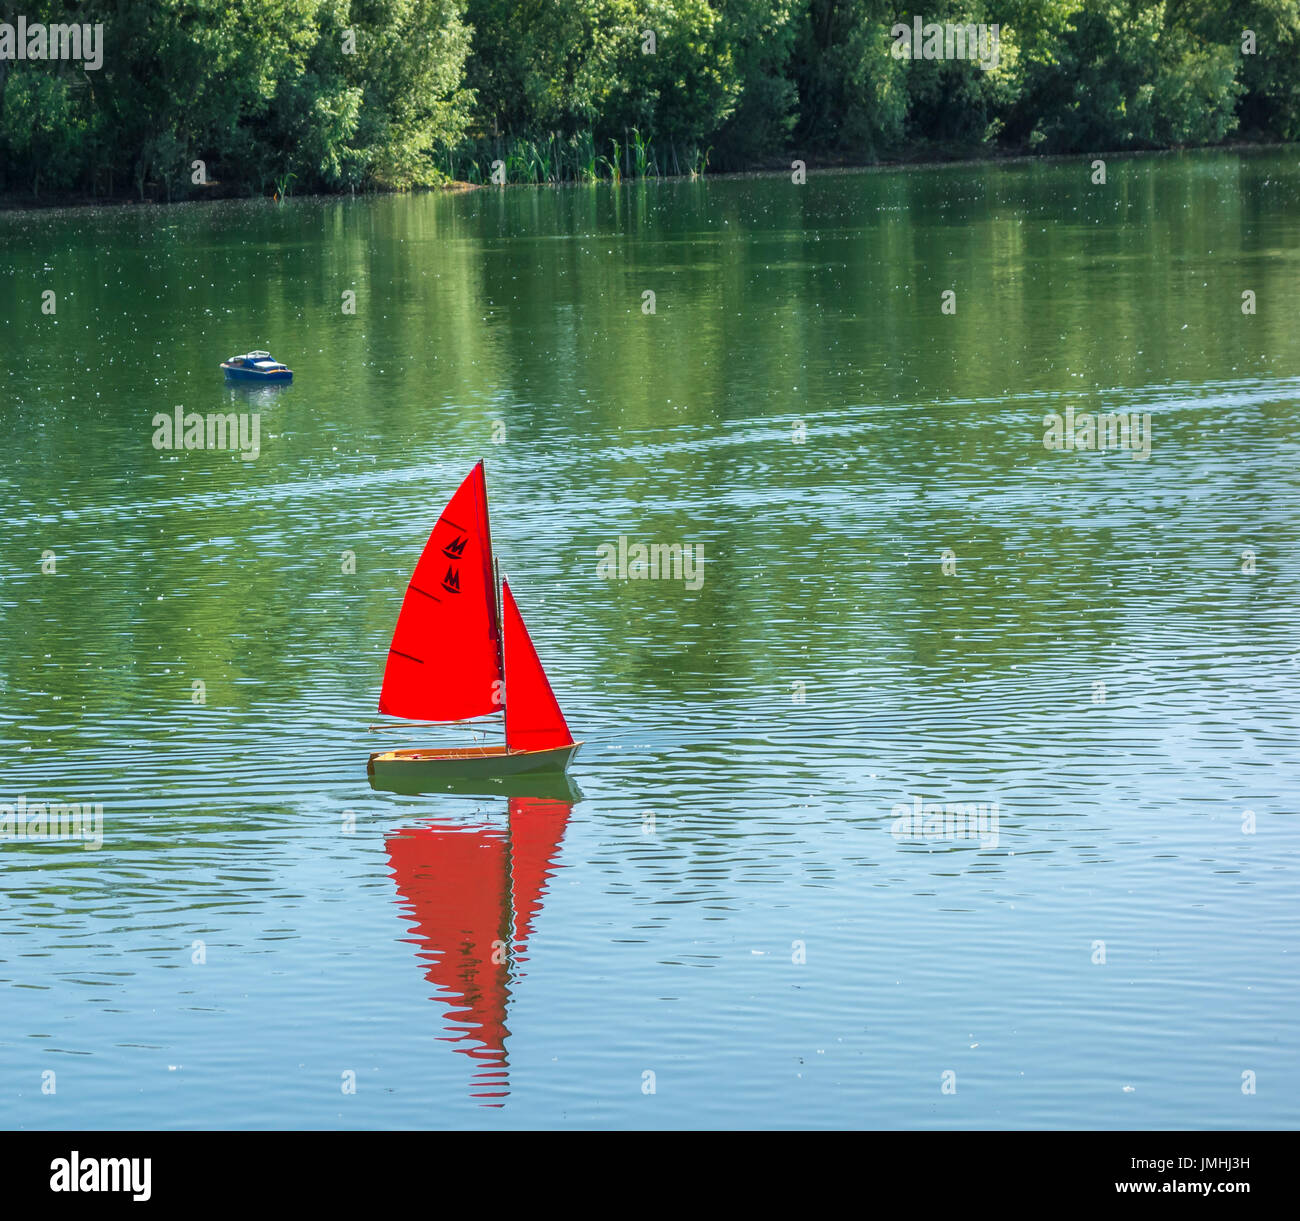 Model yacht with sed sails on lake Stock Photo: 150363461 - Alamy